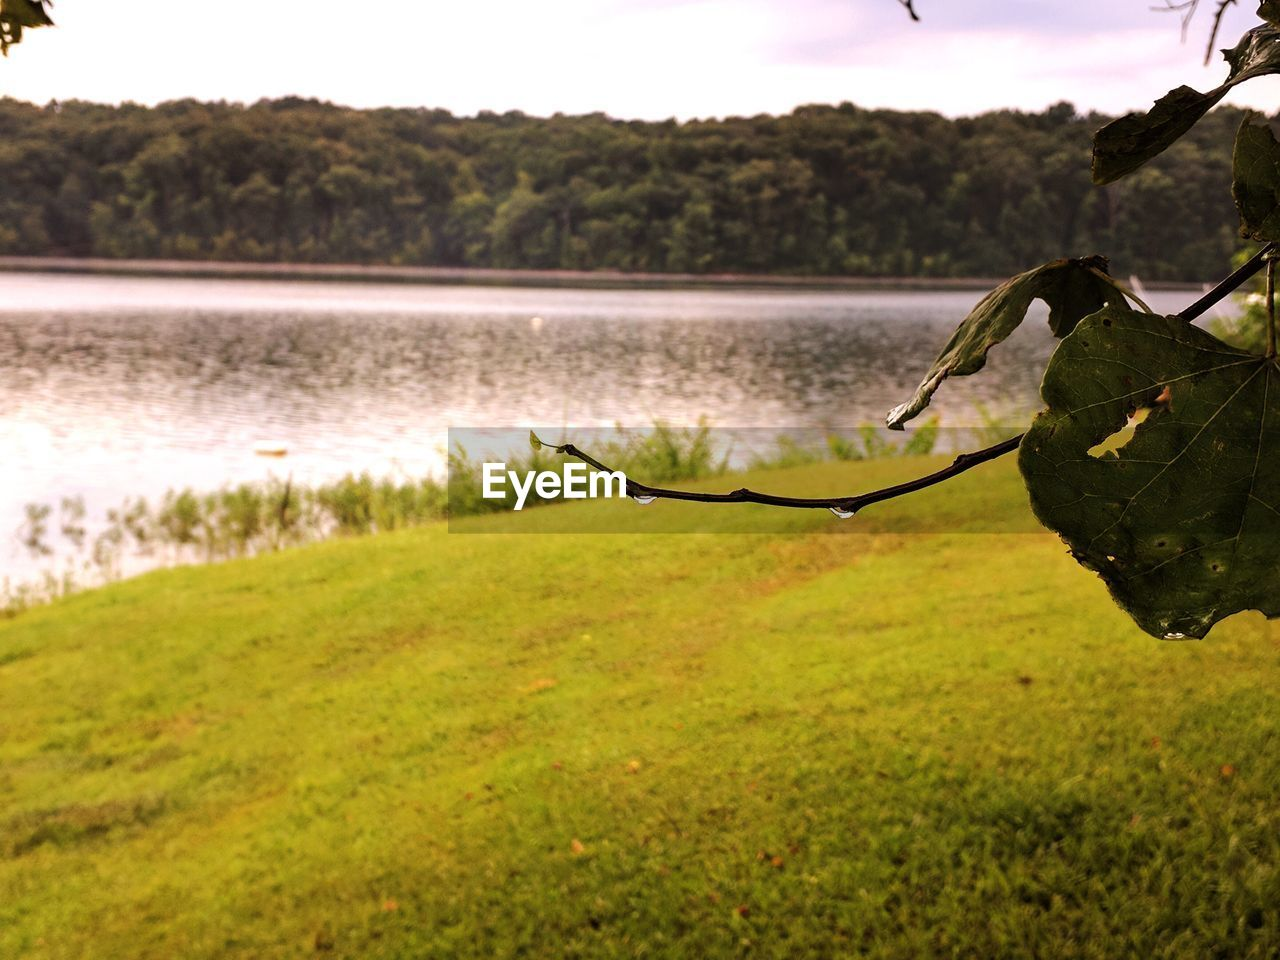 plant, water, lake, tranquility, beauty in nature, grass, nature, tree, tranquil scene, no people, scenics - nature, day, green color, growth, focus on foreground, land, outdoors, plant part, sky, leaves